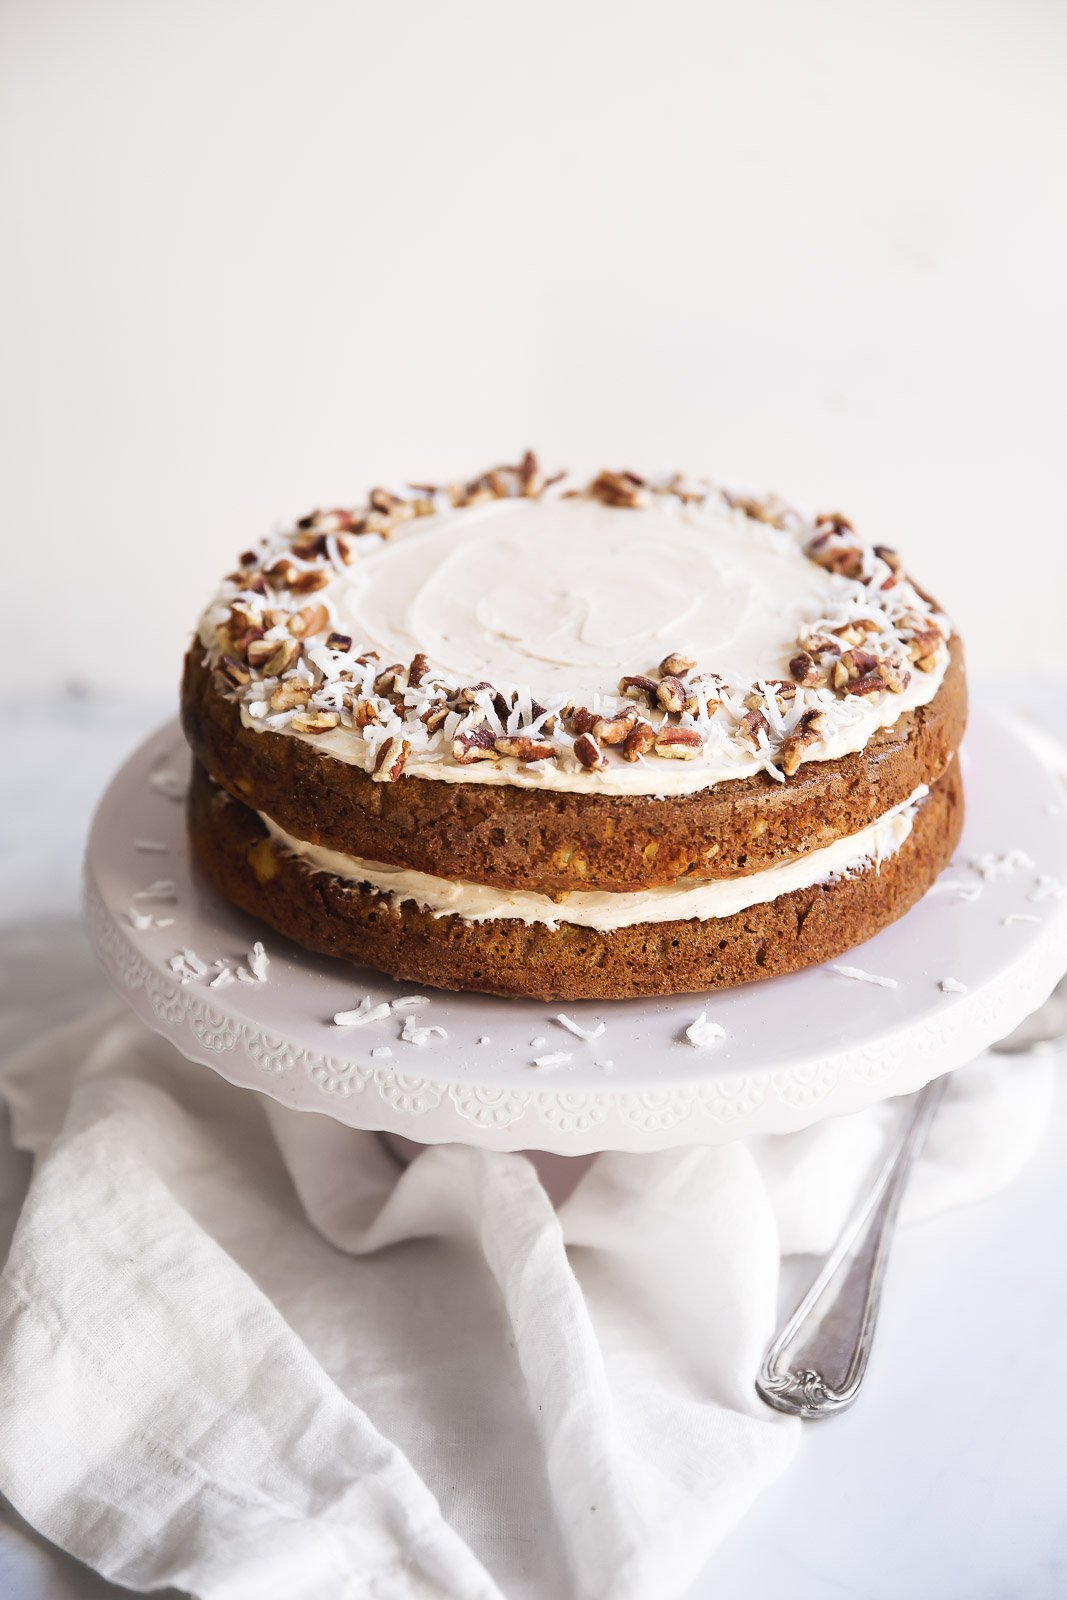 Carrot Cake Recipe Without Nuts Or Raisins